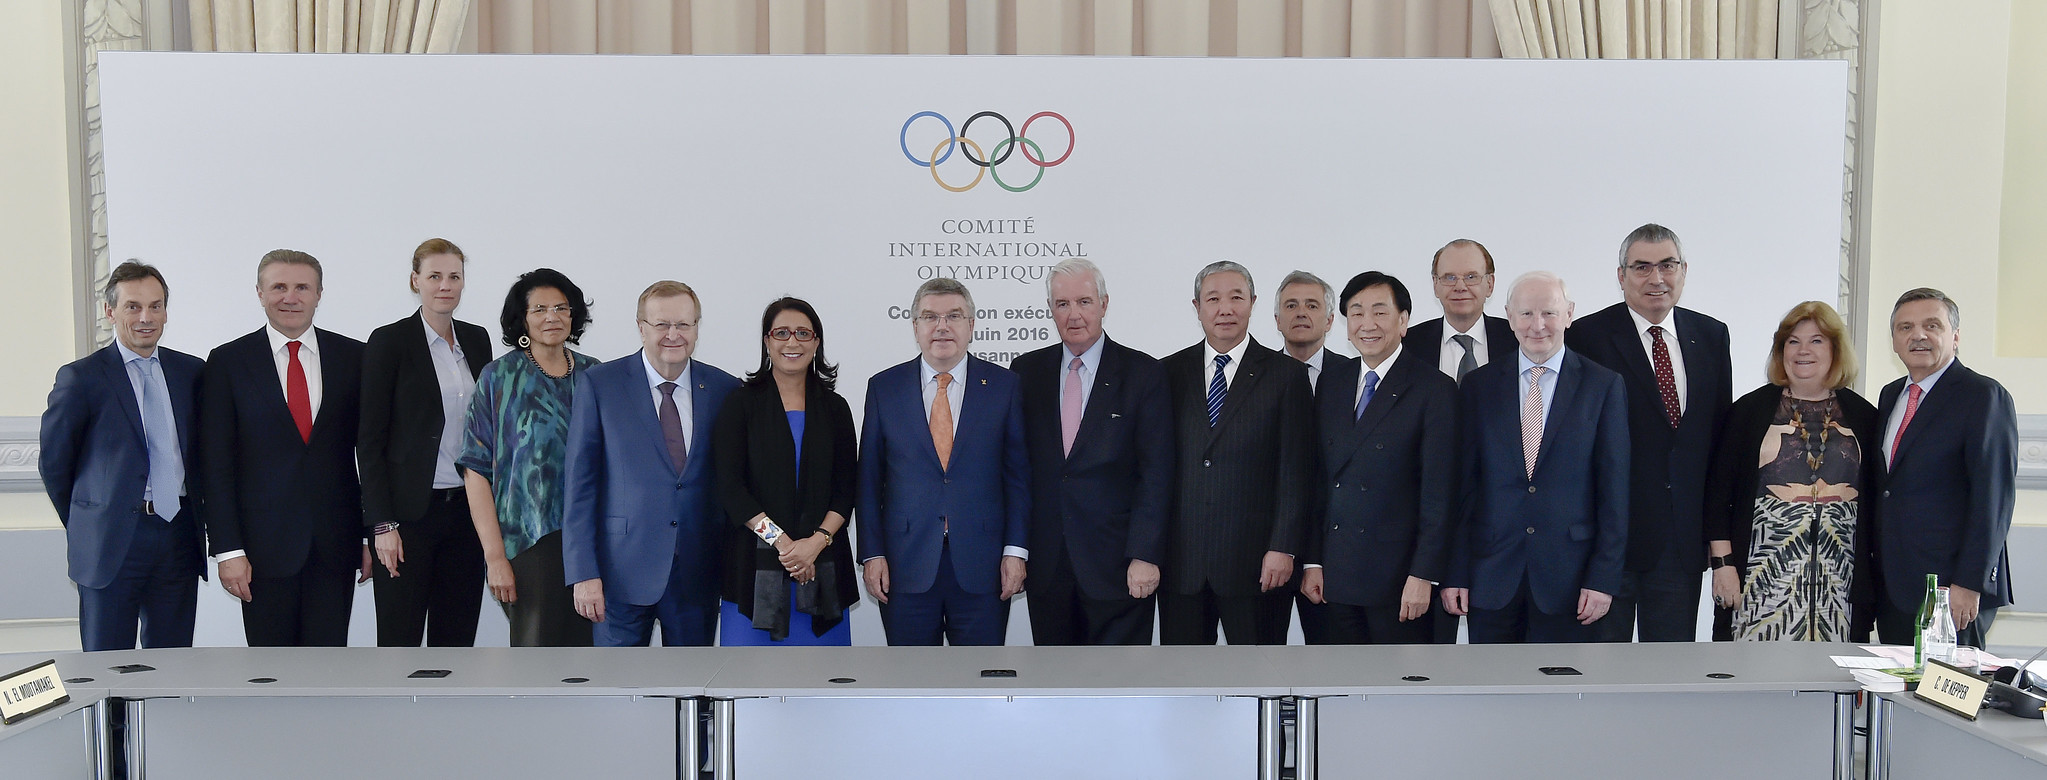 IOC Executive Board Meeting Lausanne - June 2016